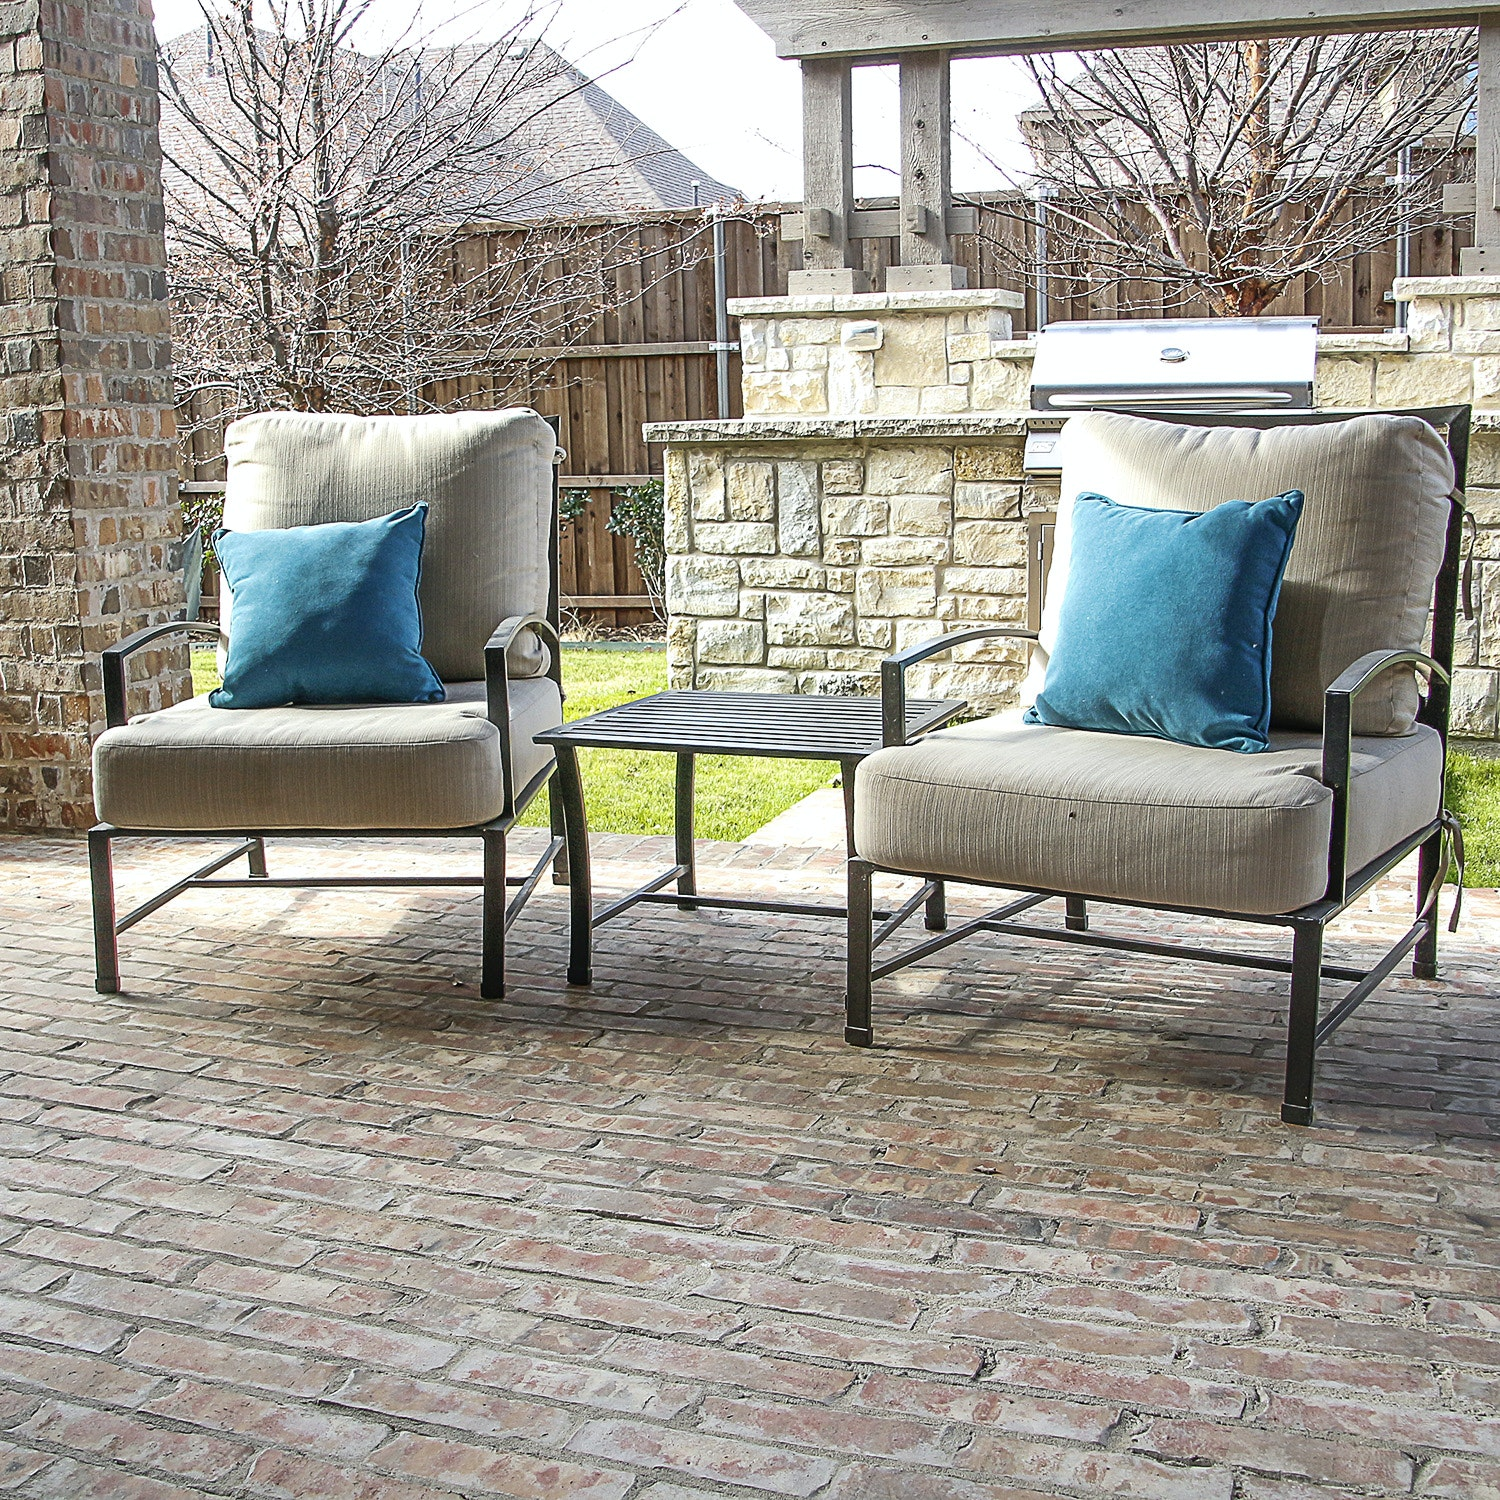 Pair of Patio Chairs and Patio Side Table